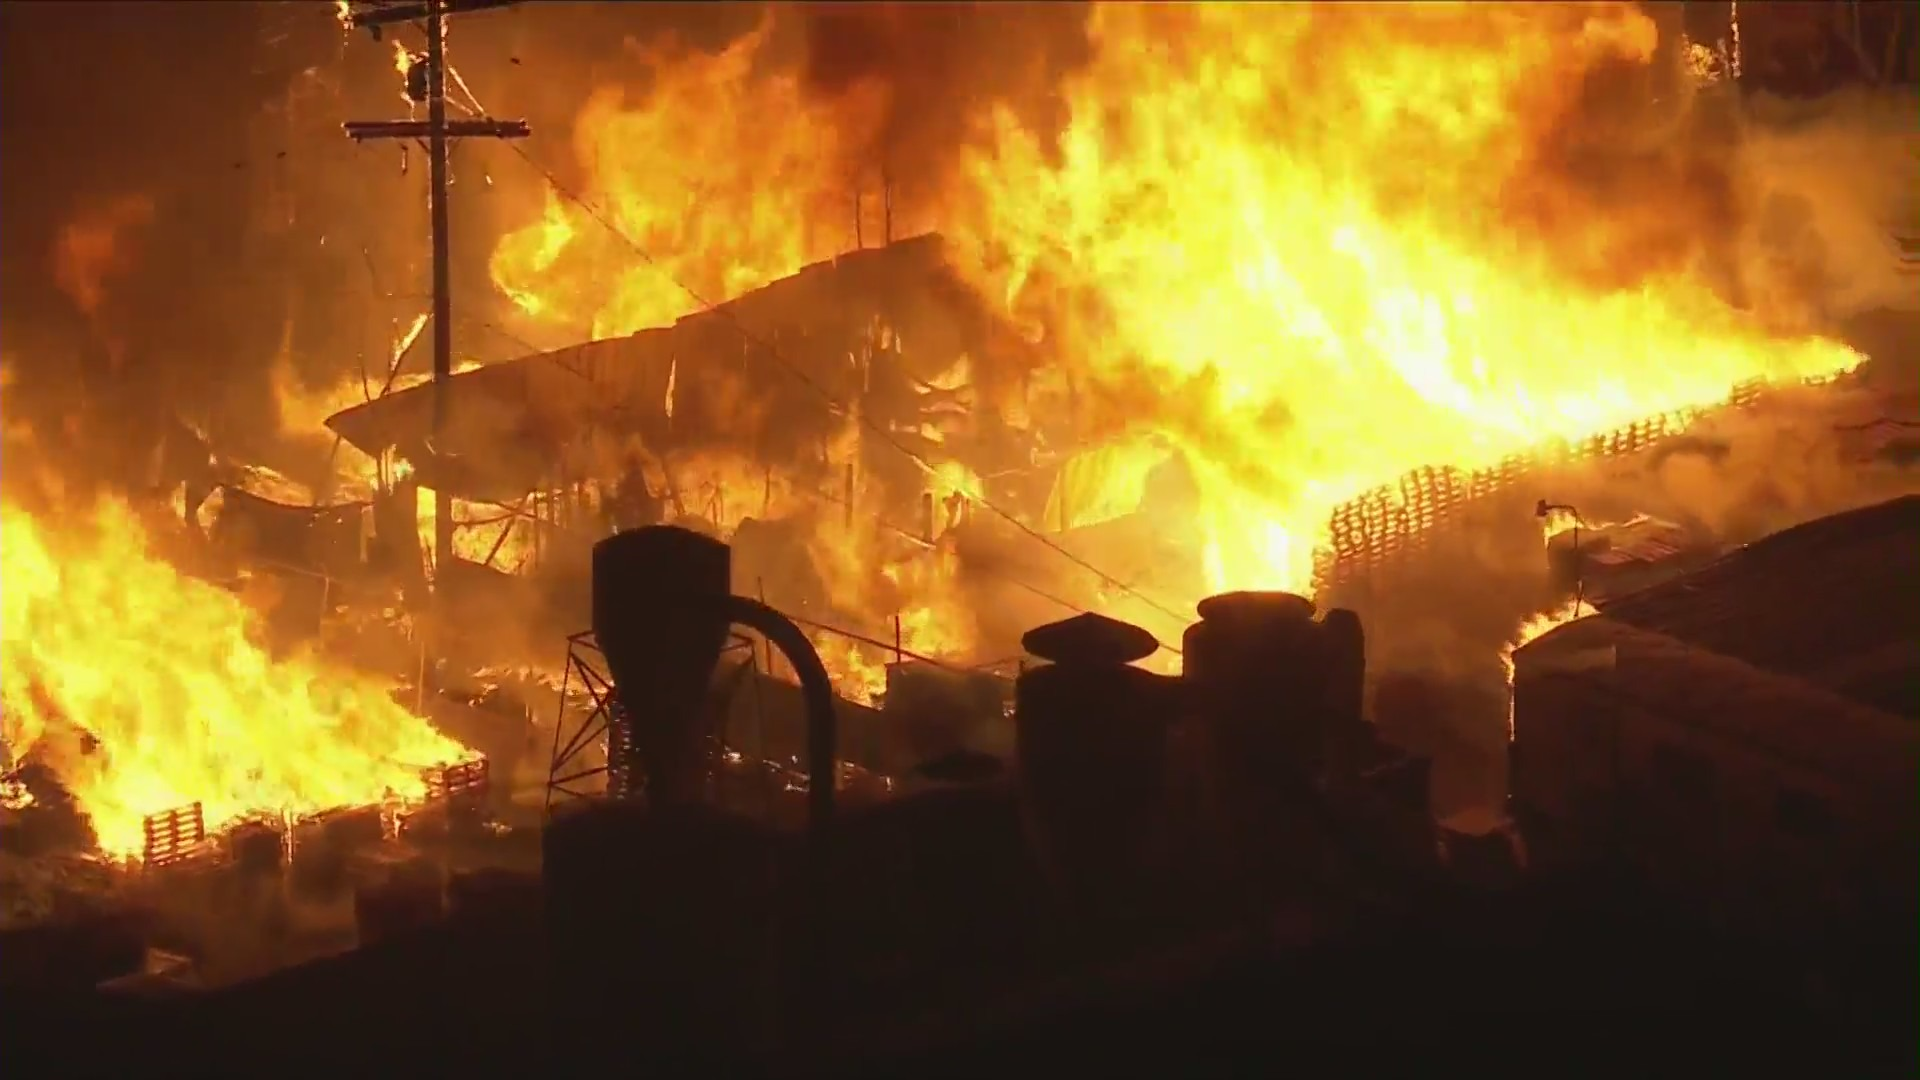 A fire erupted in Compton on Feb. 26, 2021. (KTLA)